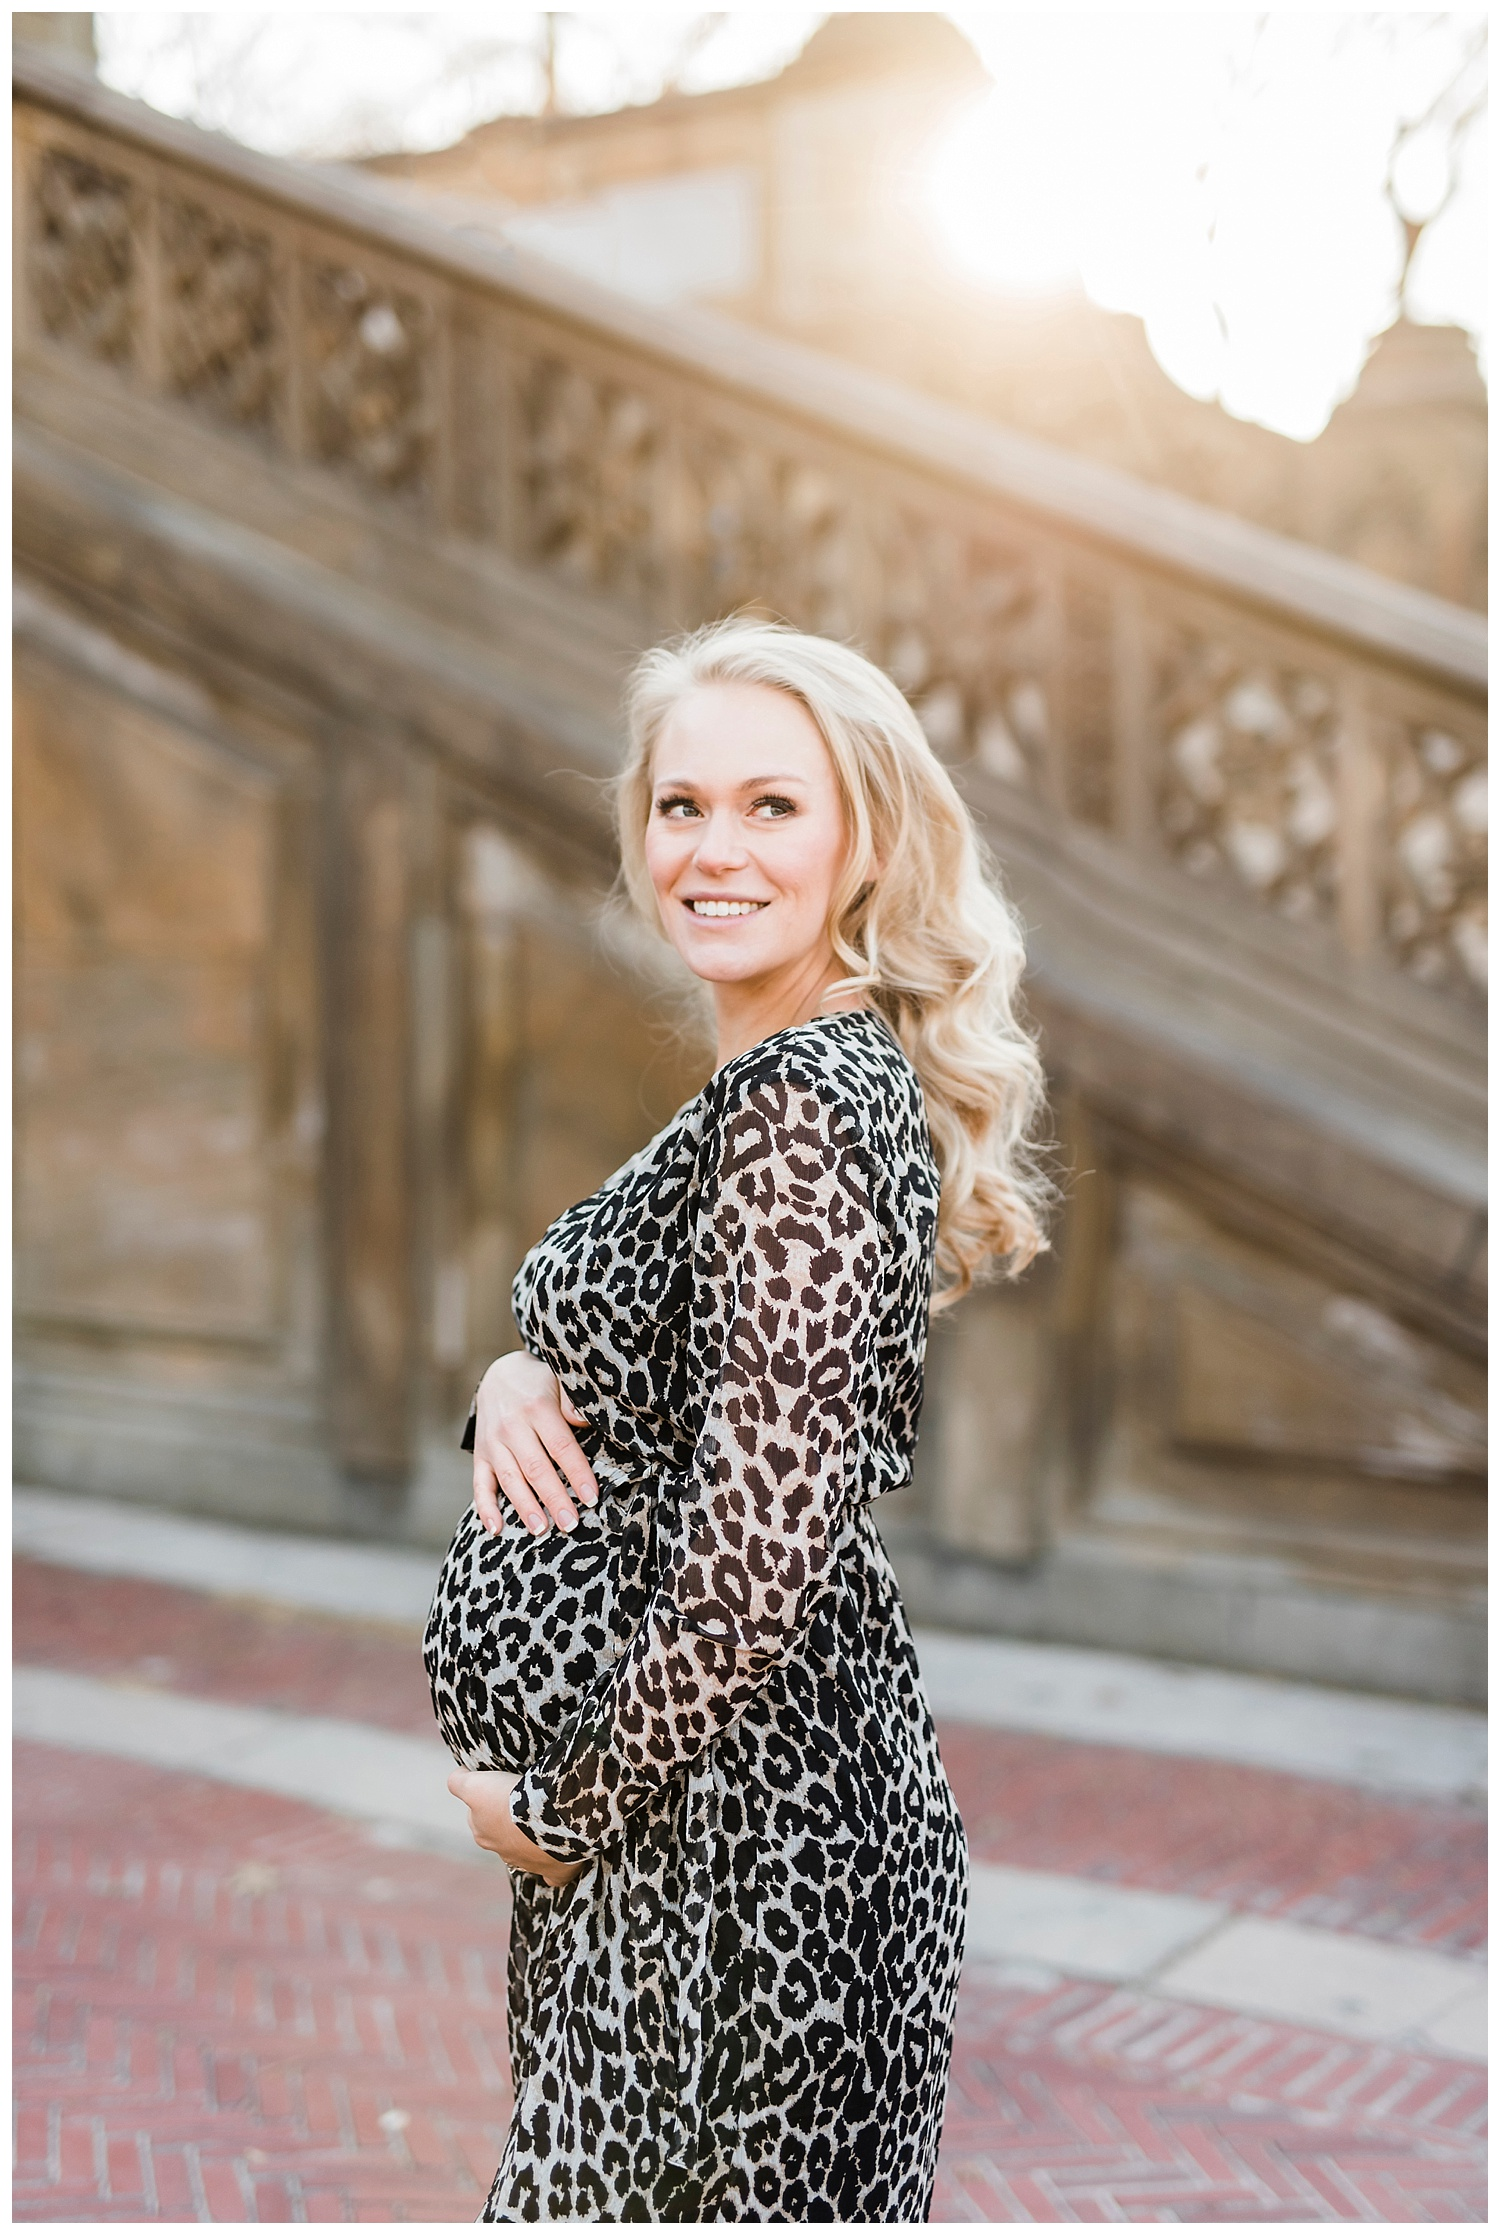 Krista_Maternity_Photos_Central_Park_NYC_Apollo_Fields_86.jpg